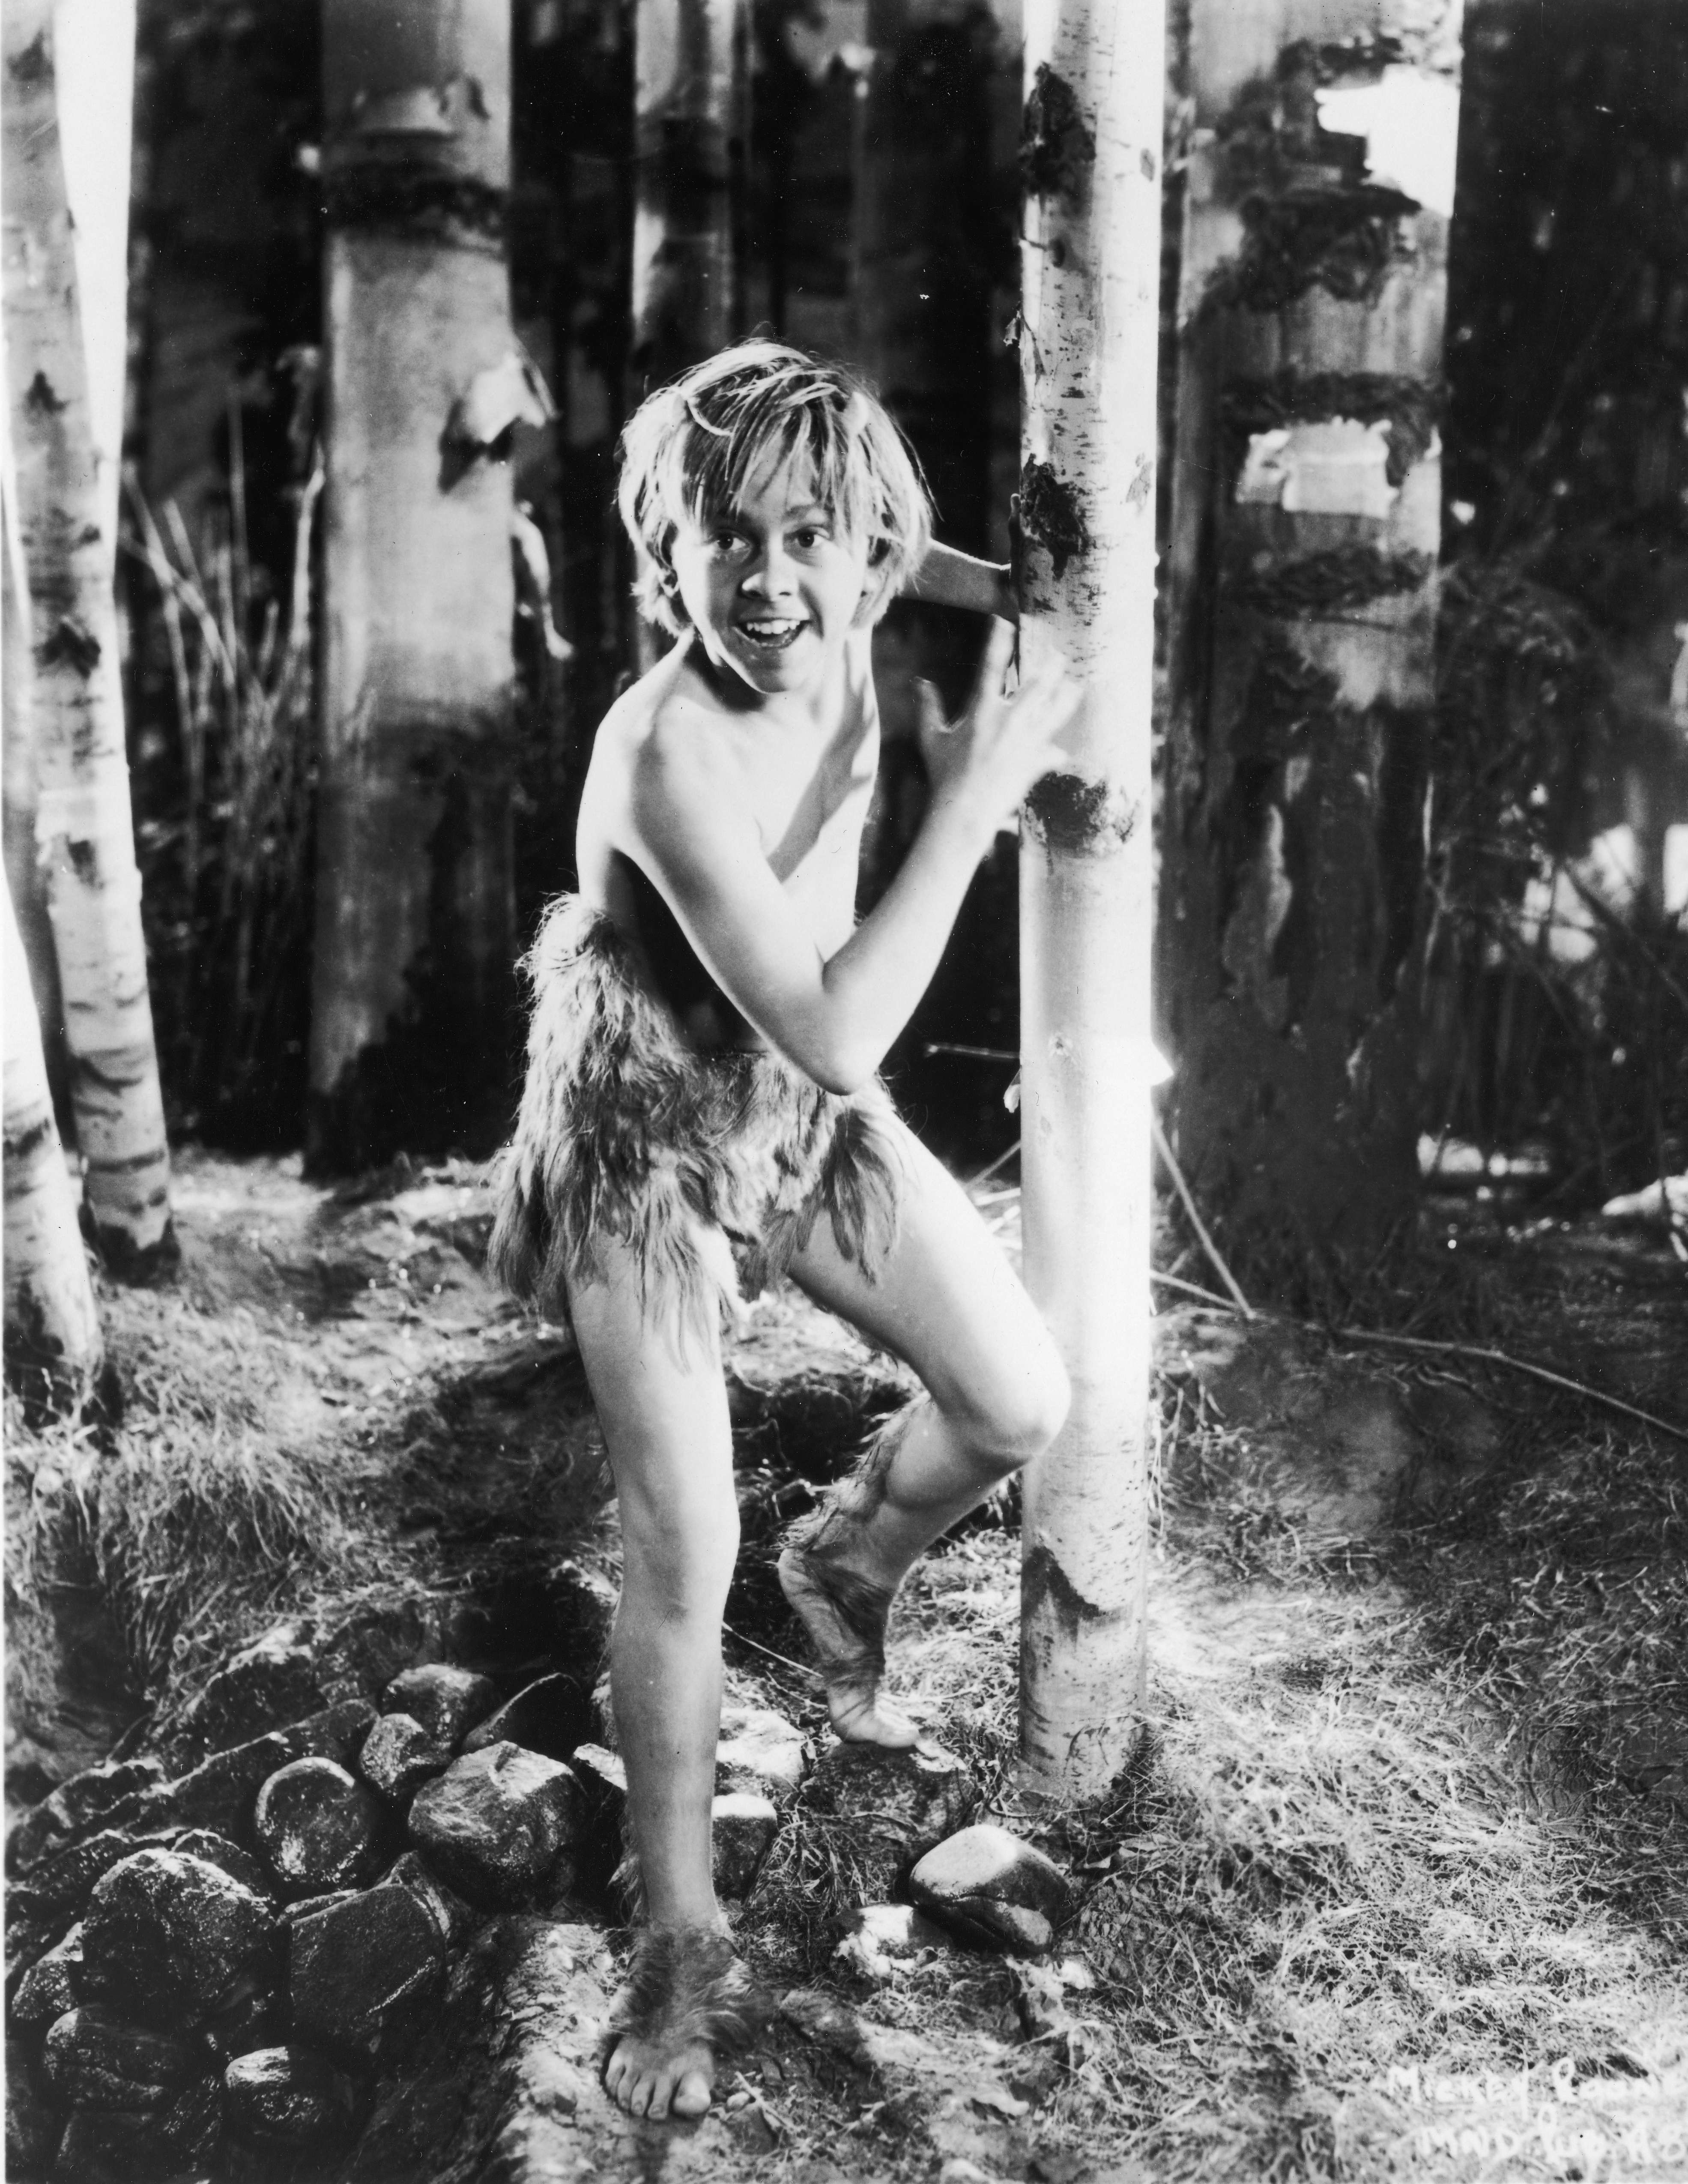 Rooney played Puck in the 1935 film <i>A Midsummer Night's Dream</i>.